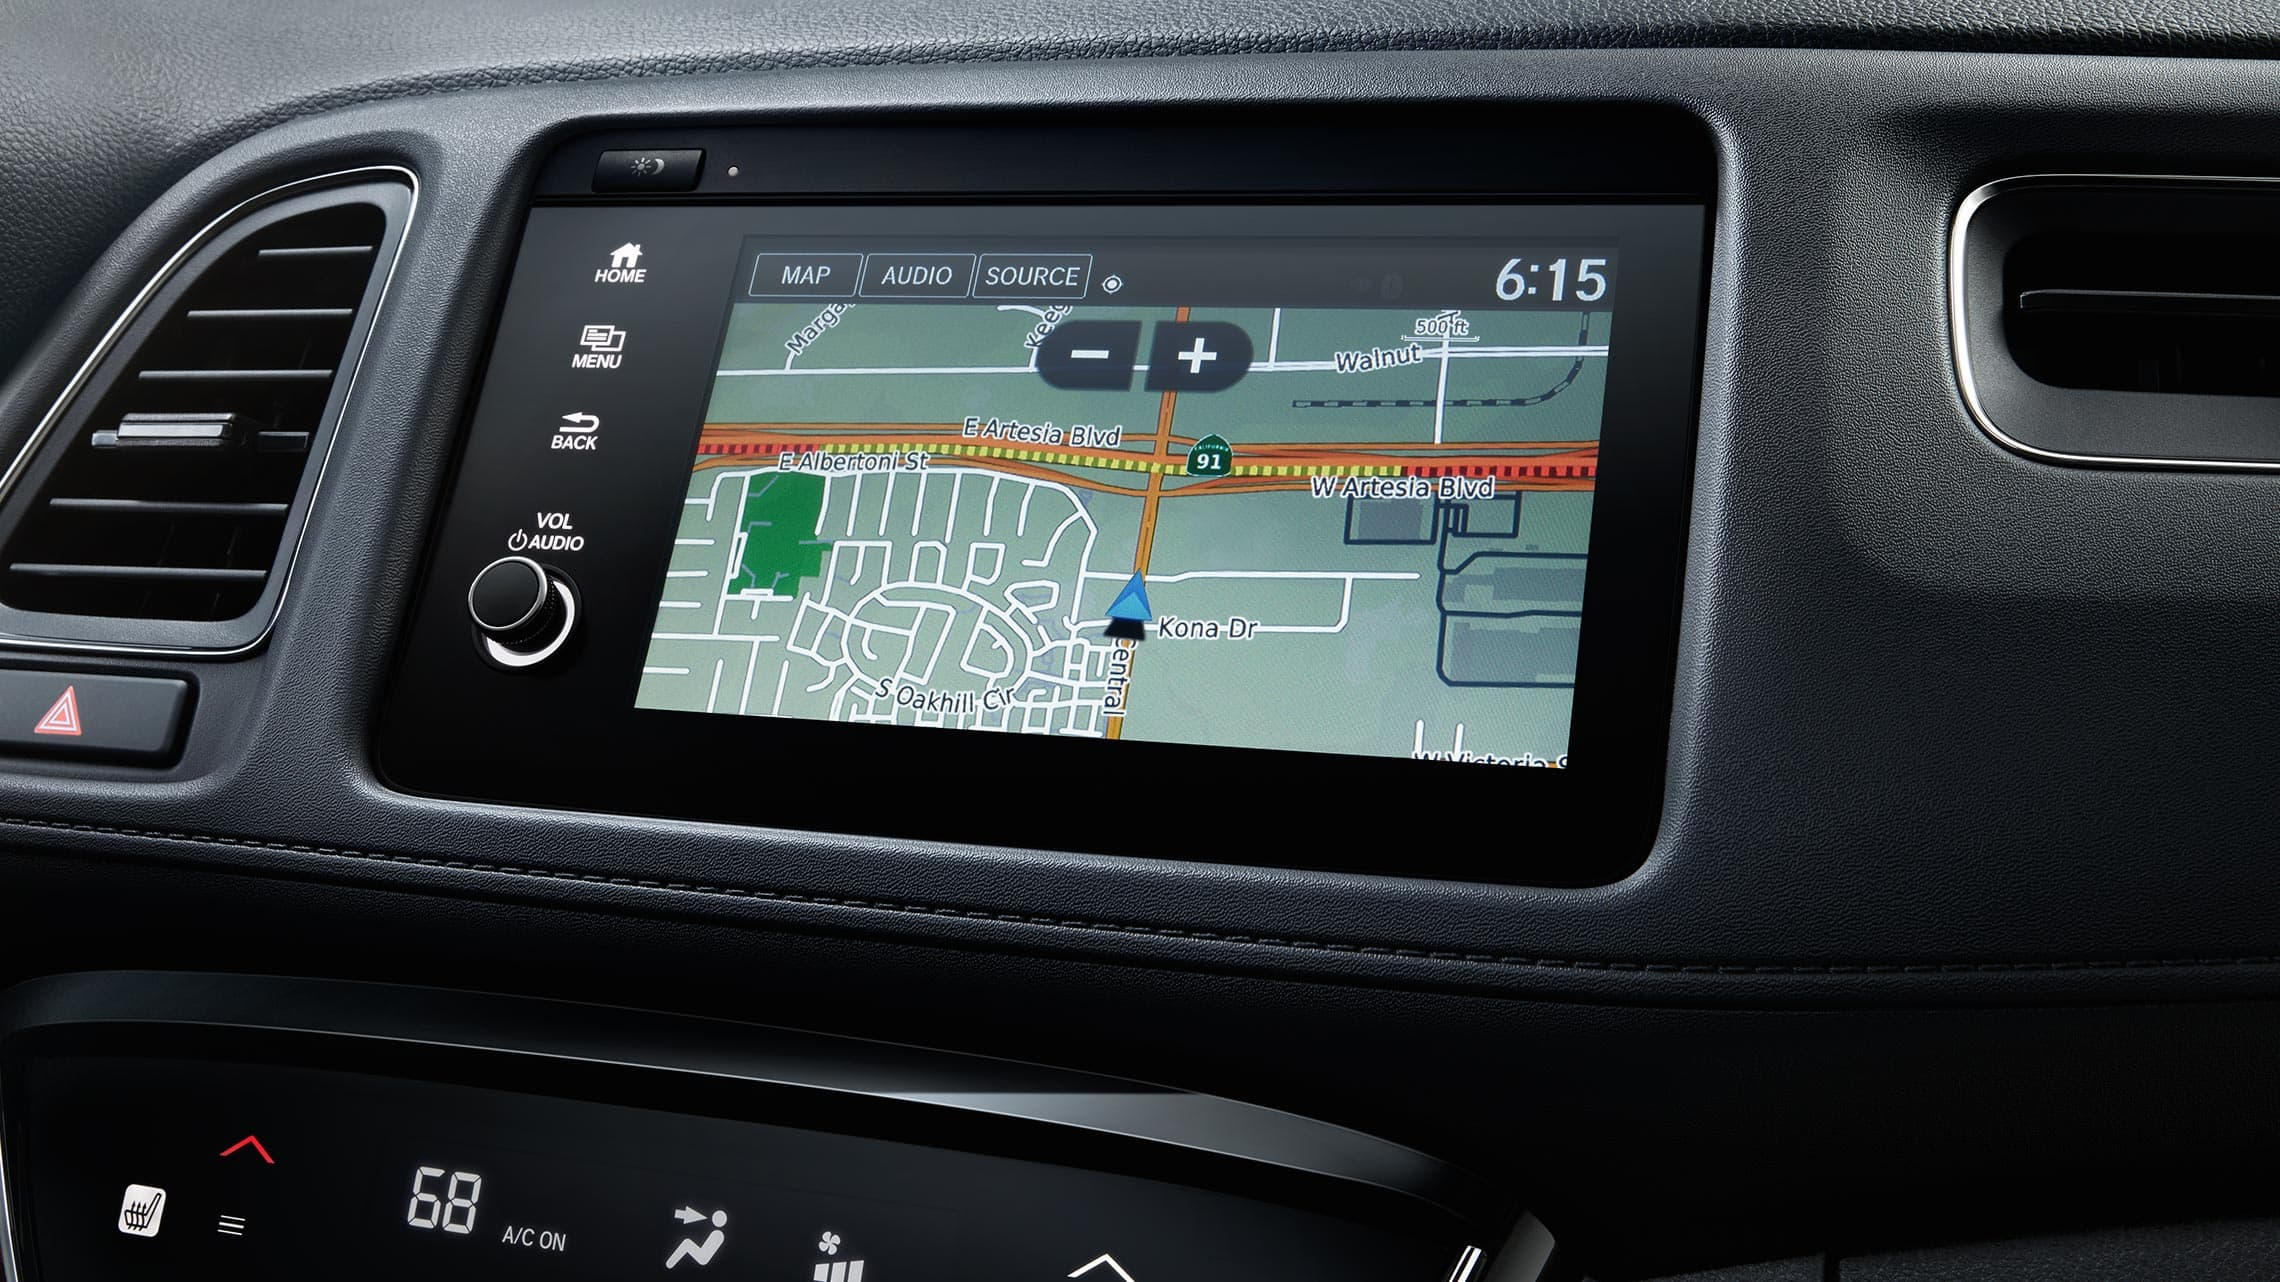 Honda Satellite-Linked Navigation System™ detail on Display Audio touchscreen in the 2019 Honda HR-V Touring.